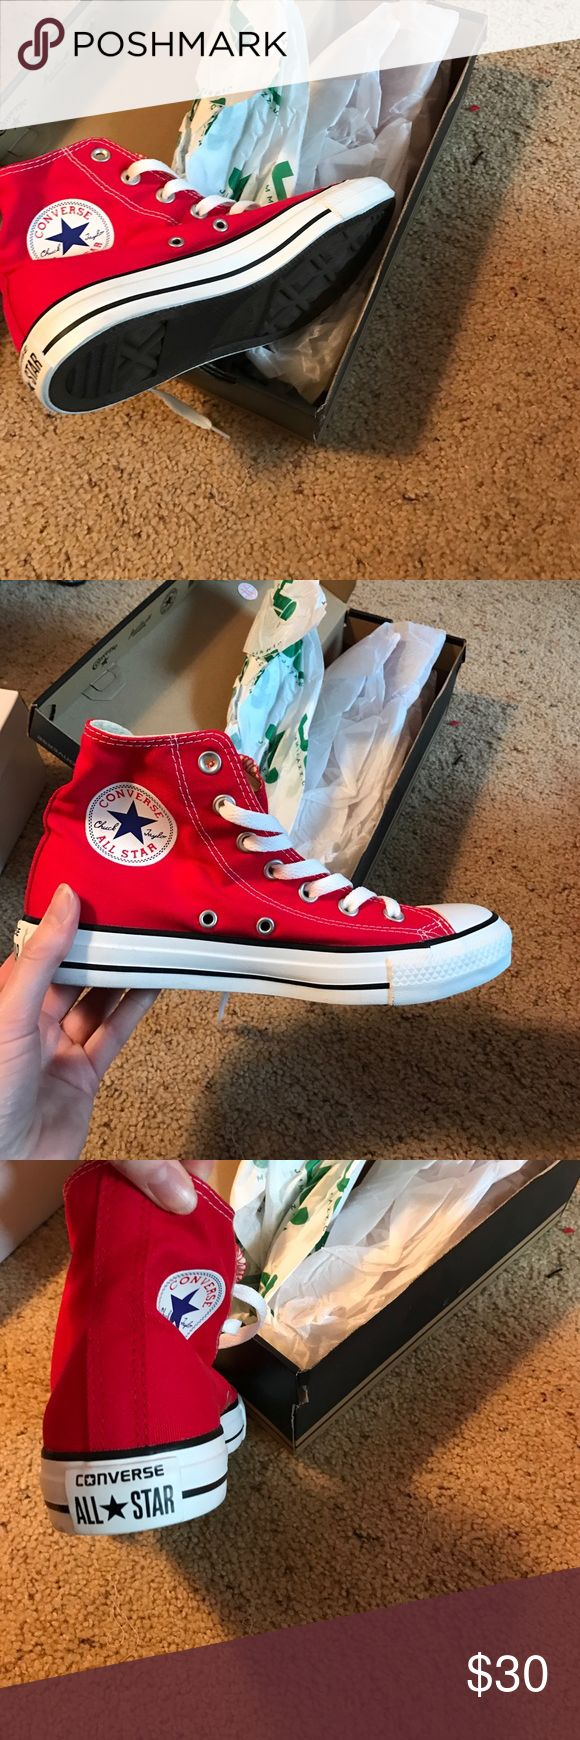 Brand new red high top converse Brand new red high top converse Converse Shoes Sneakers